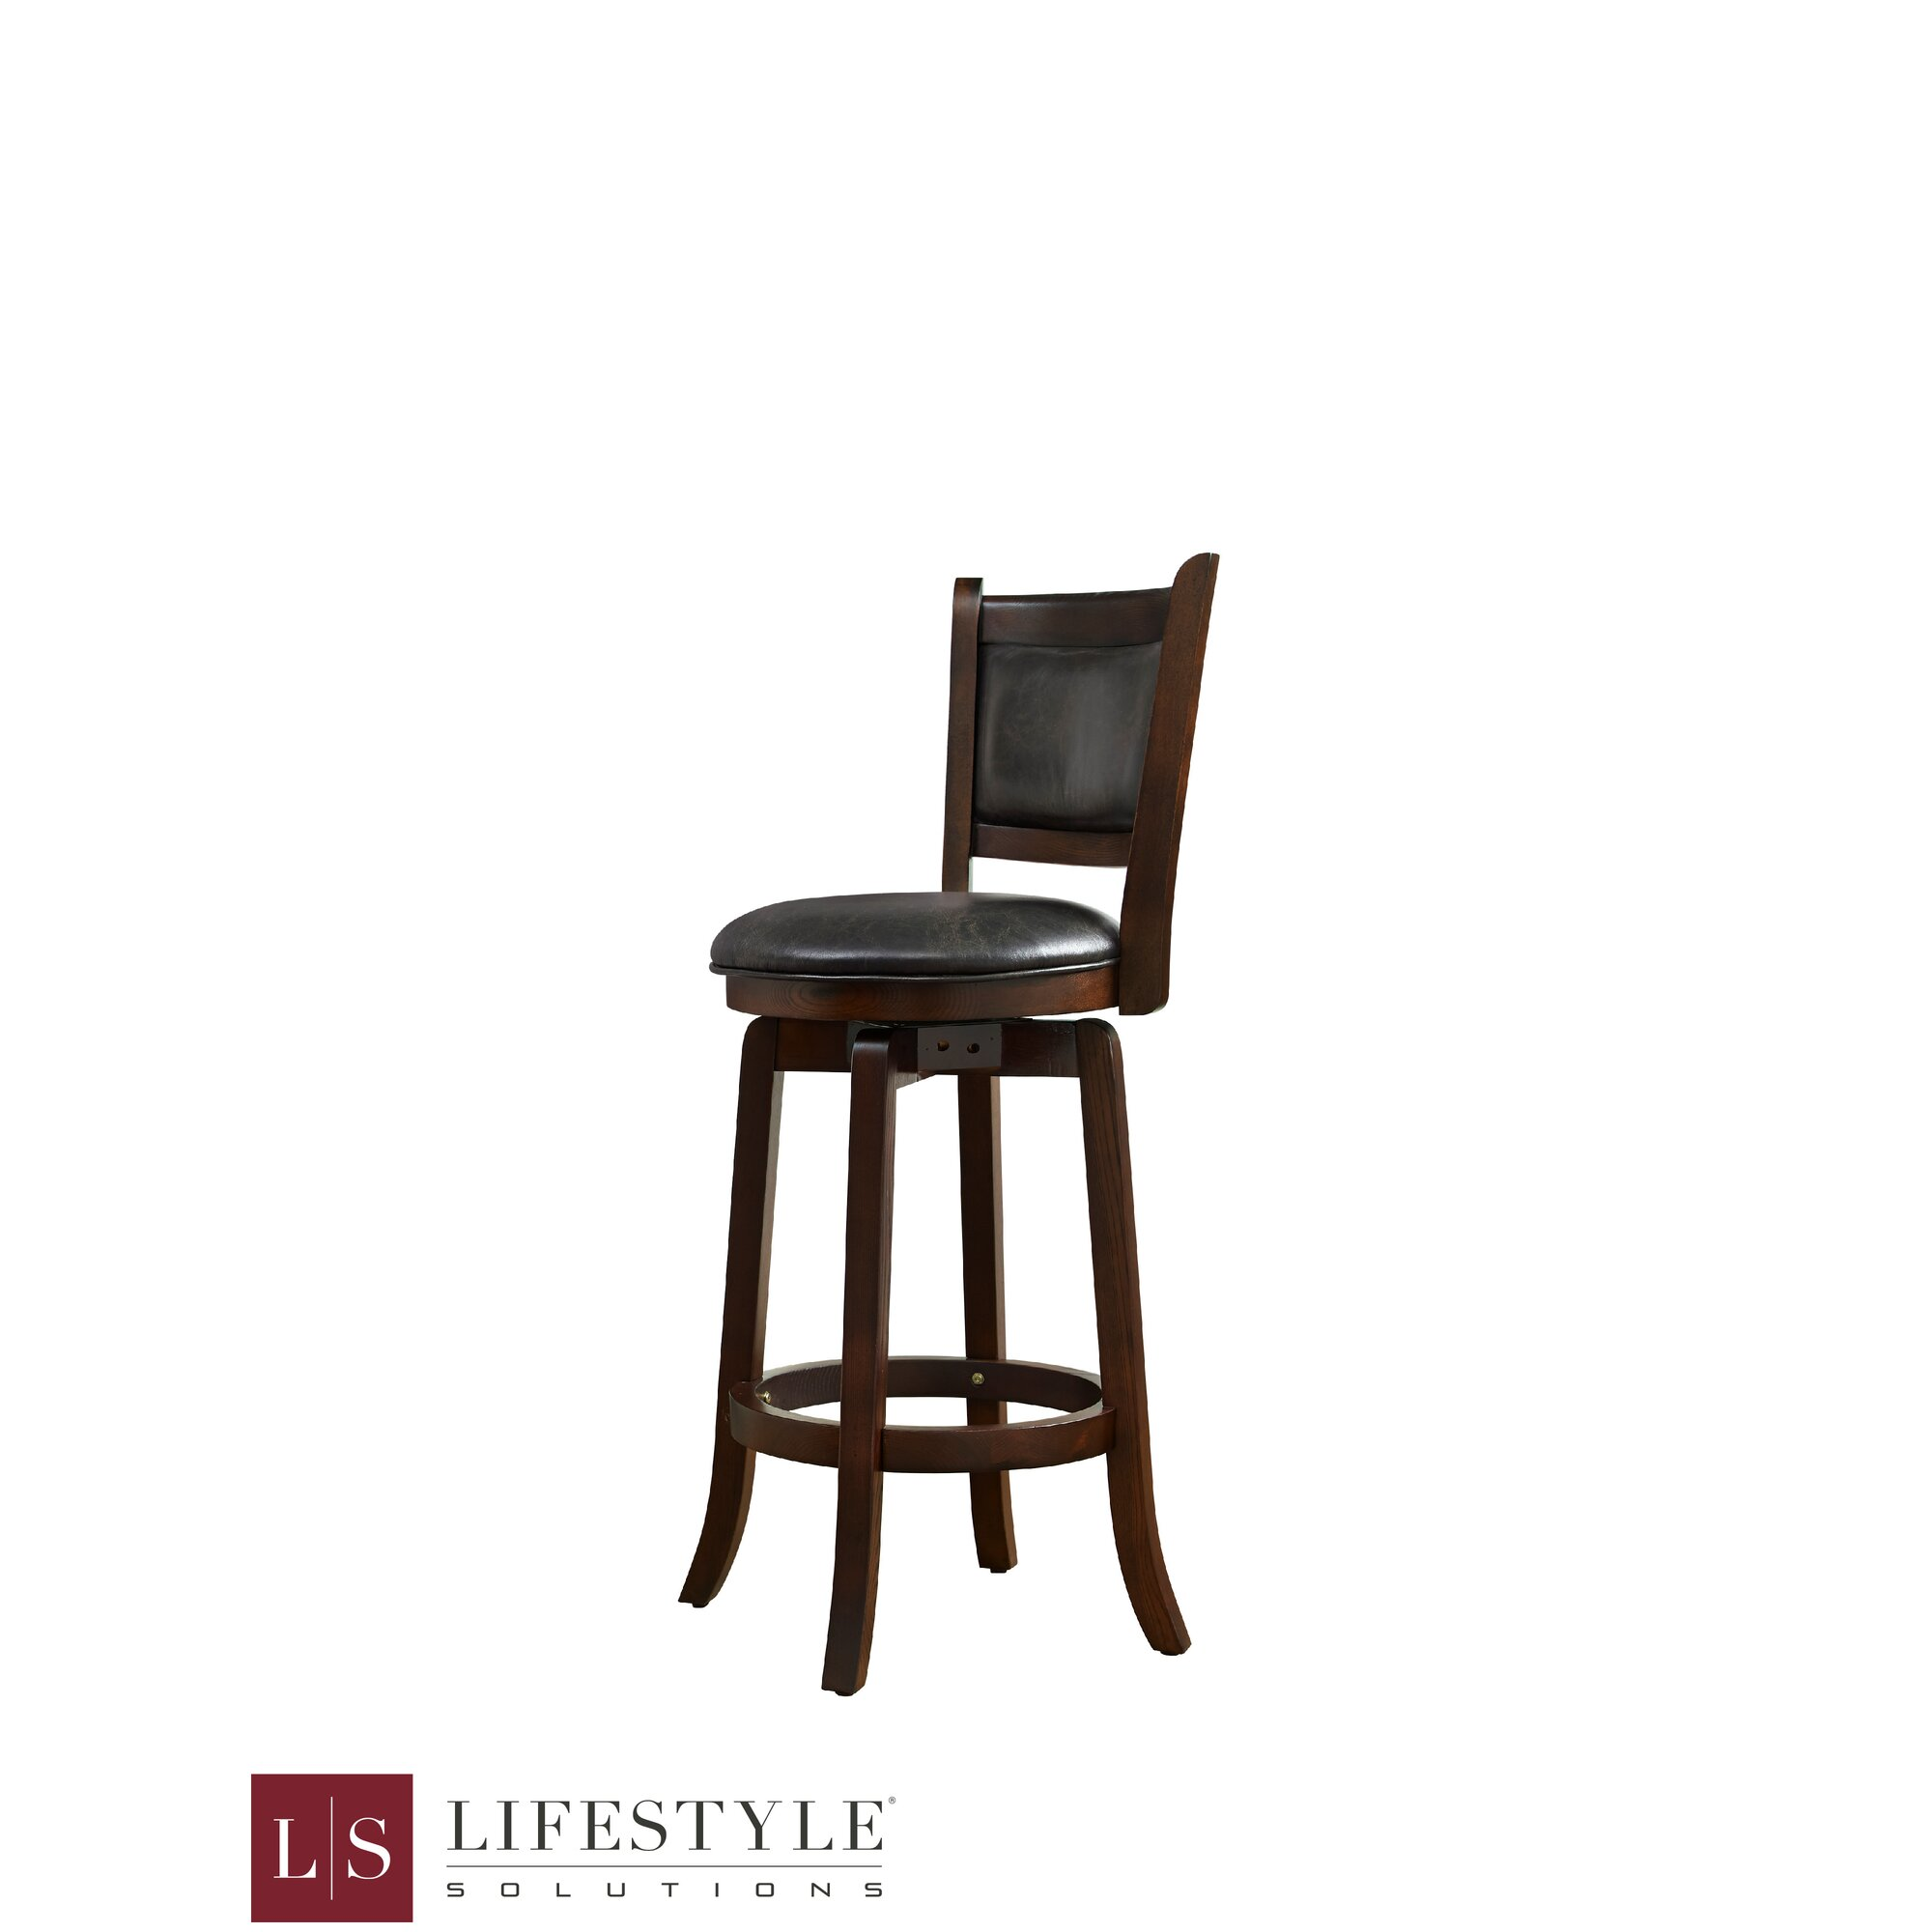 Alcott Hill Leatherman 26 Quot Bar Stool With Cushion Wayfair Ca